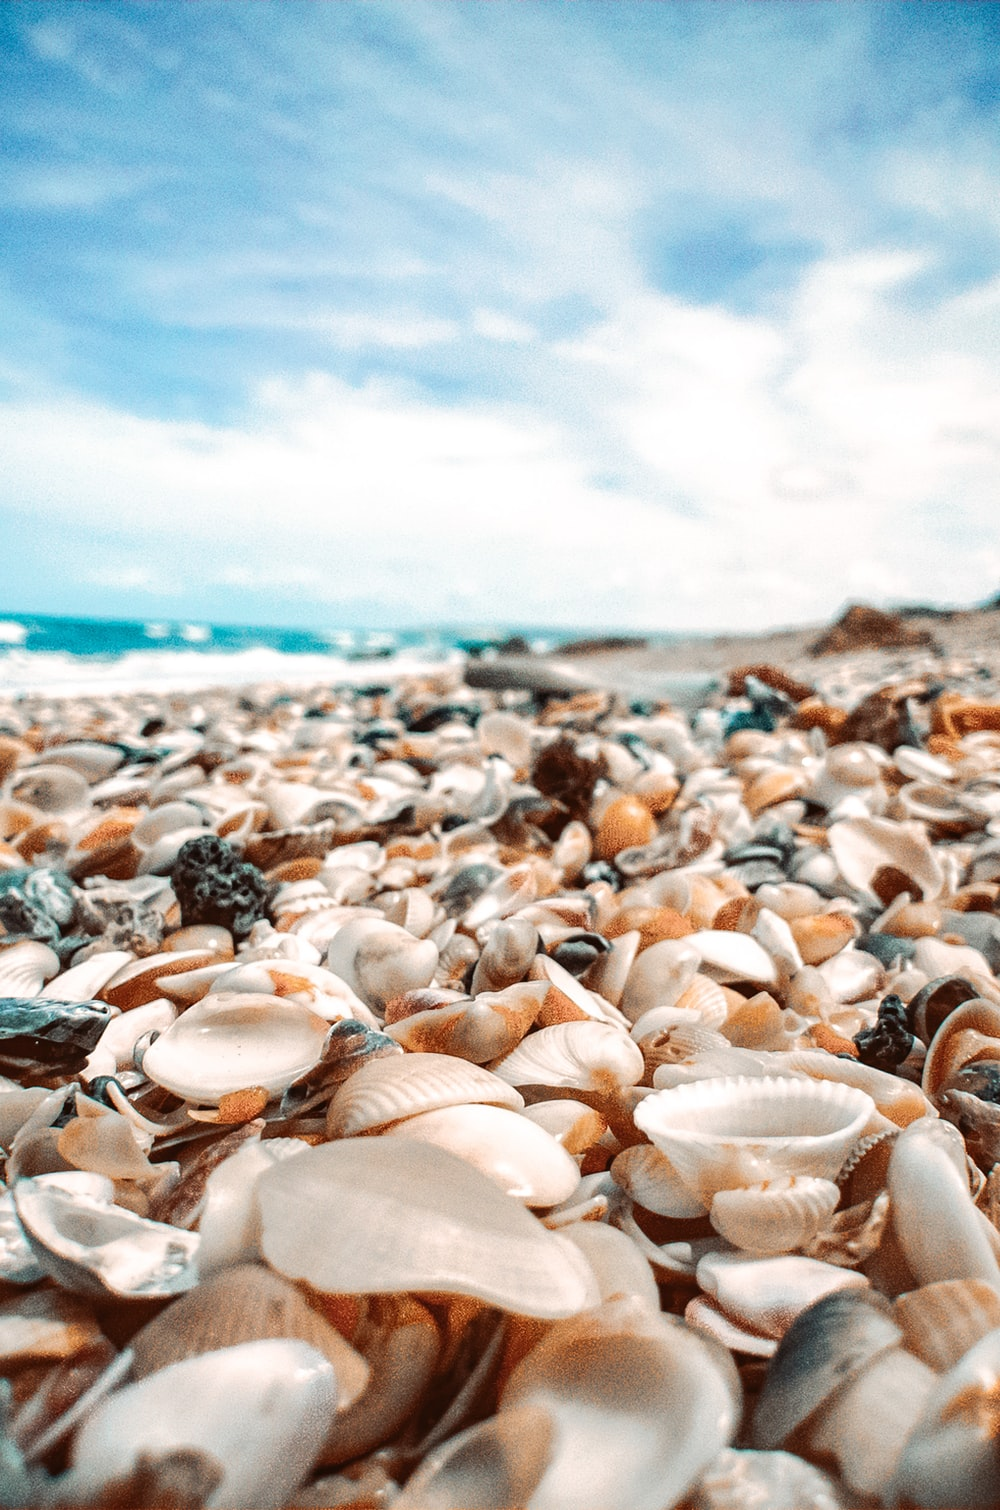 white and brown seashells on beach shore during daytime